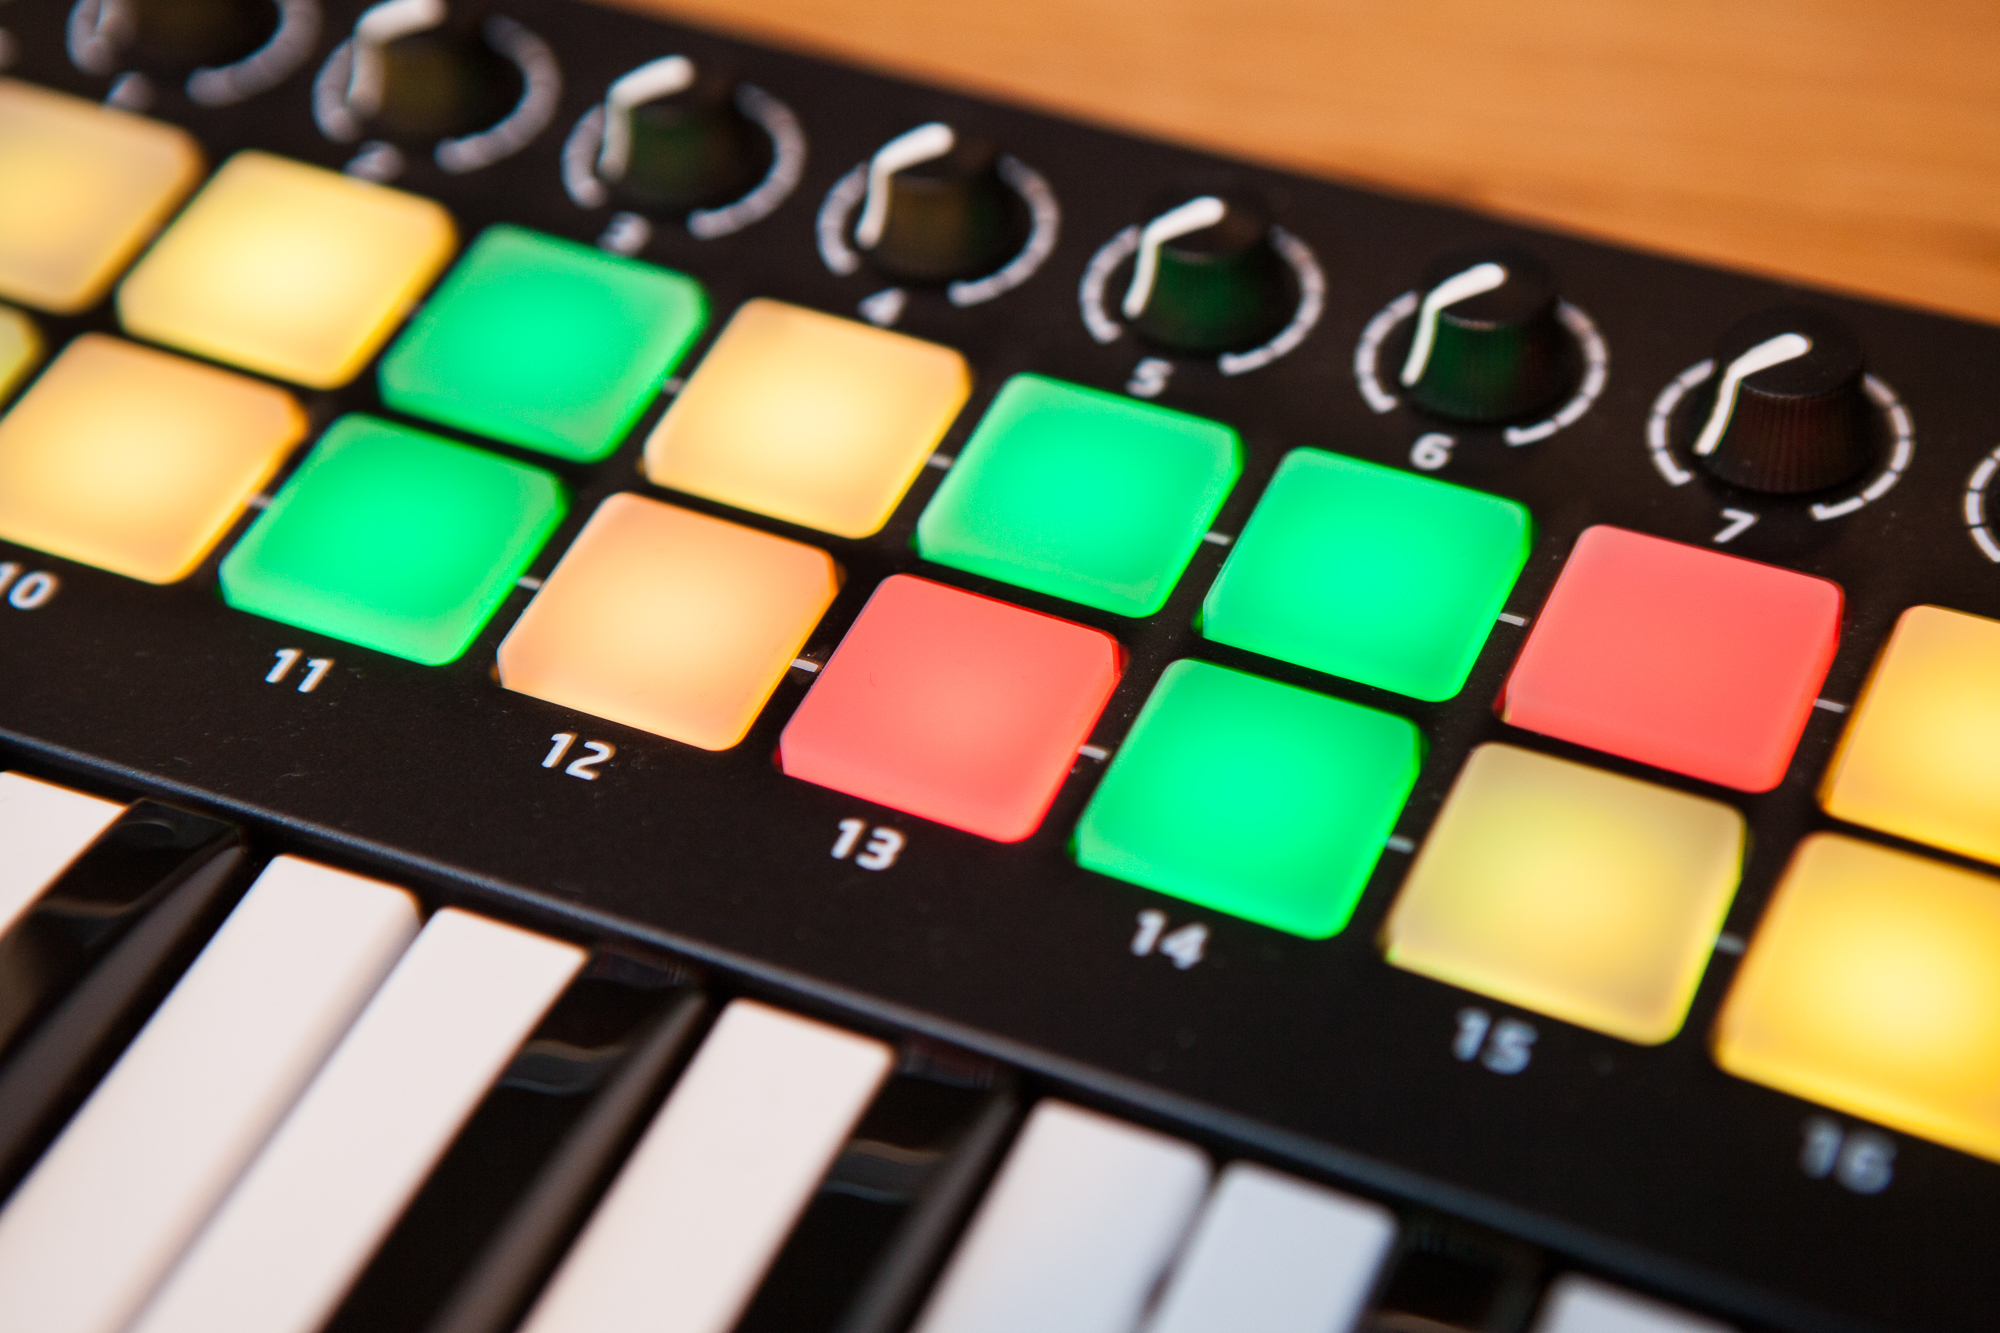 How to Control the LEDs on a Novation Launchkey Mini II